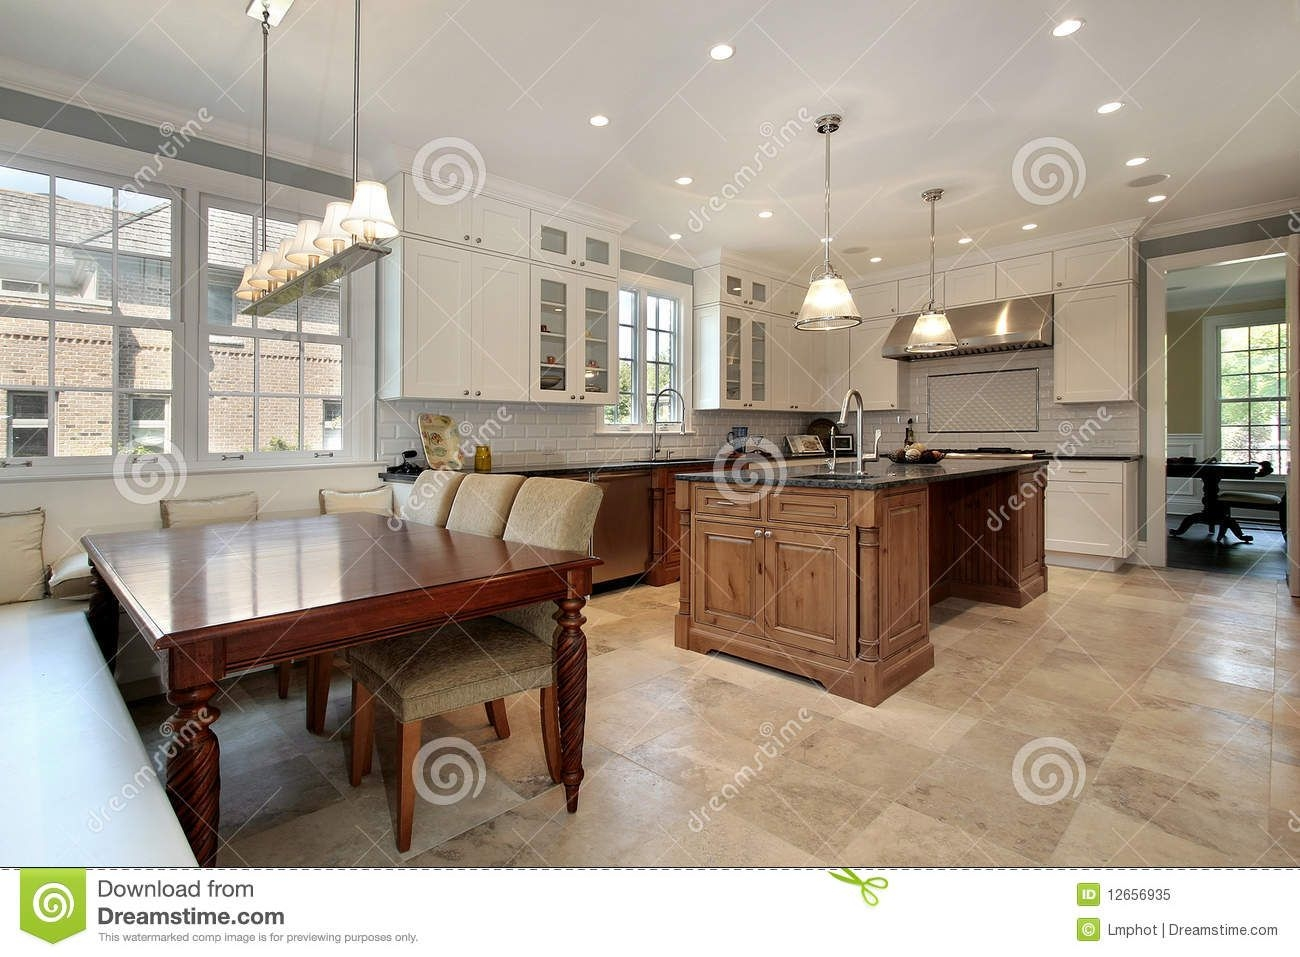 Kitchen With Eating Area And Bench Stock Image  Image Of Decor Granite 12656935